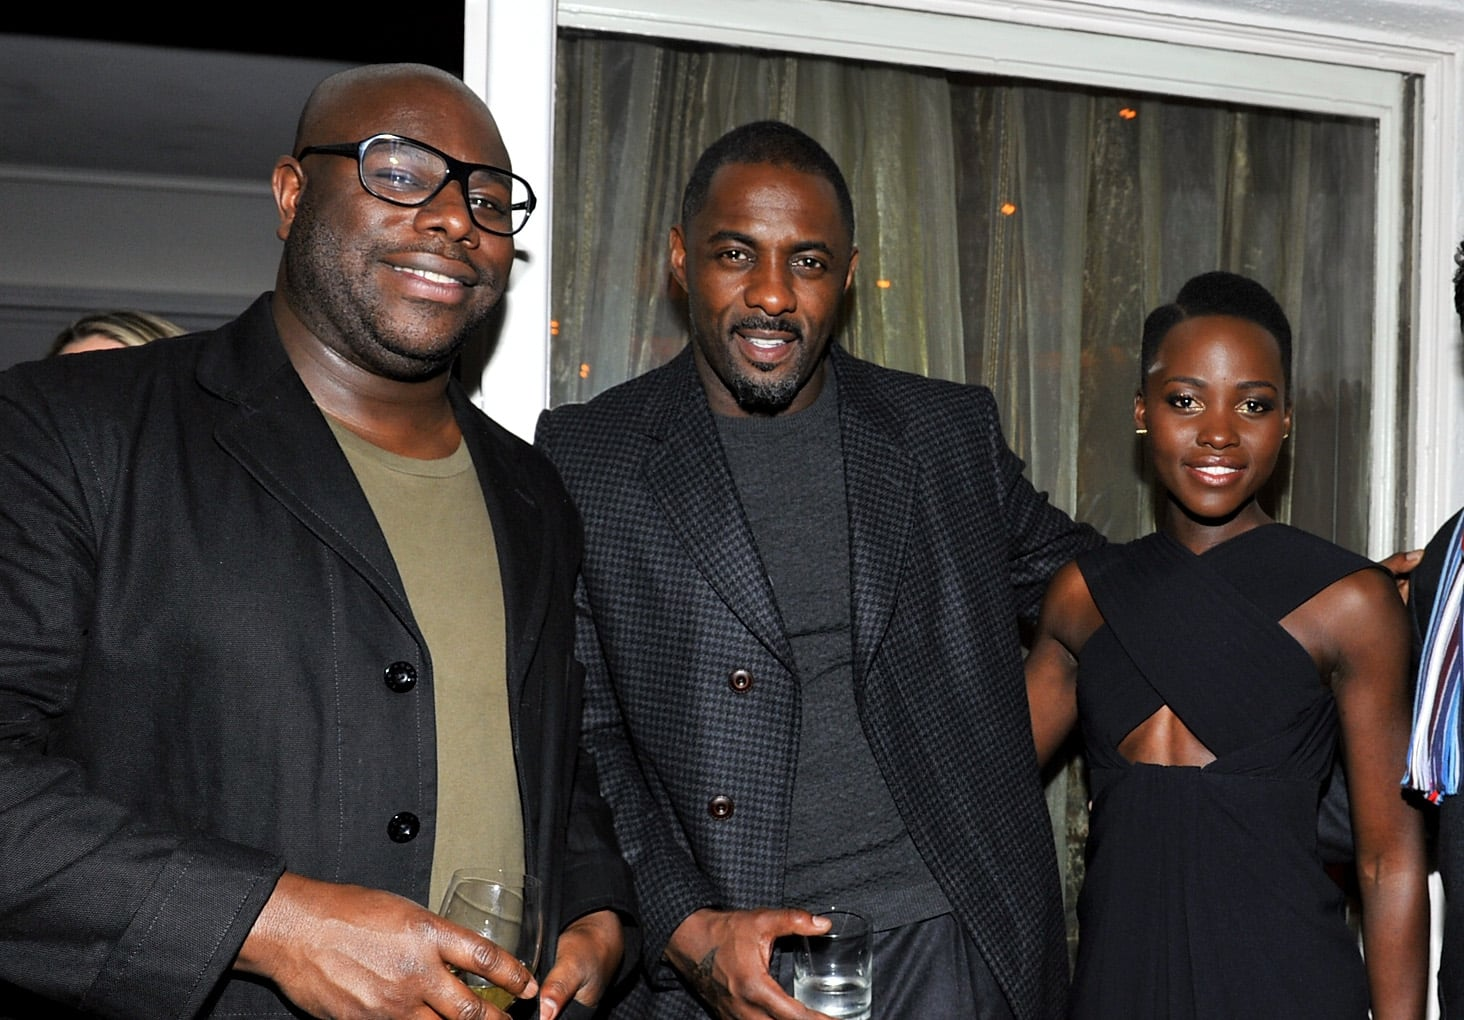 Director Steve McQueen mingled with his 12 Years a Slave stars Idris Elba and Lupita Nyong'o.